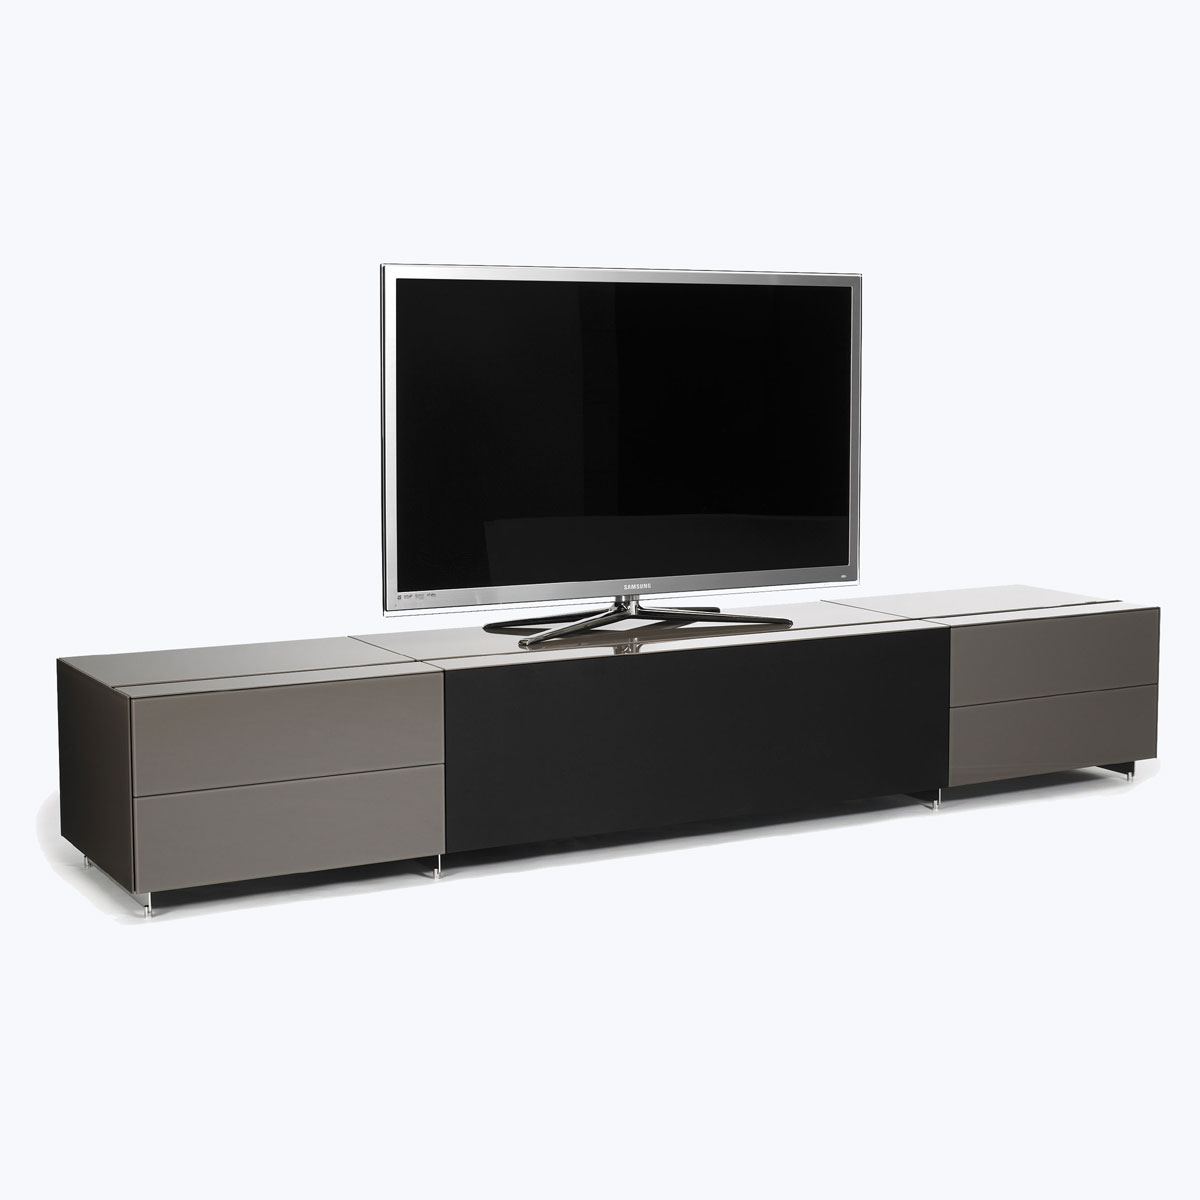 spectral cocoon co1000 co1001 co1002 tv lowboard sondermodelle bei hifi tv. Black Bedroom Furniture Sets. Home Design Ideas